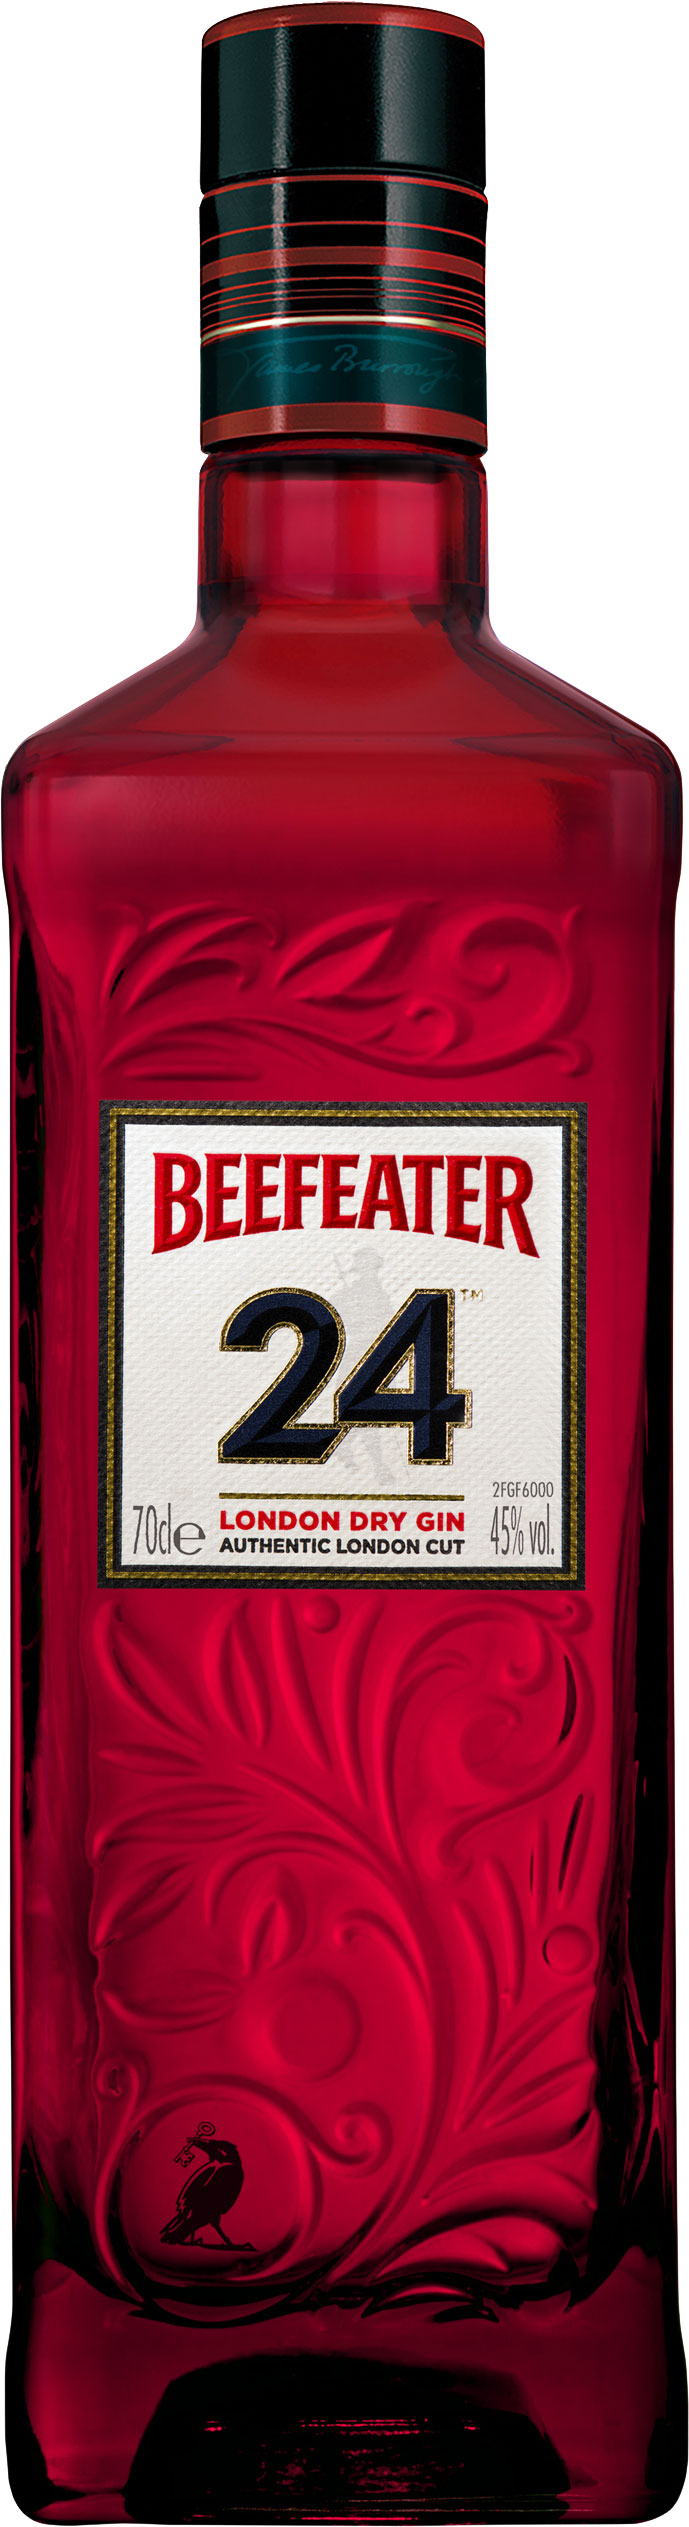 Beefeater 24 - London Dry Gin 70cl Bottle